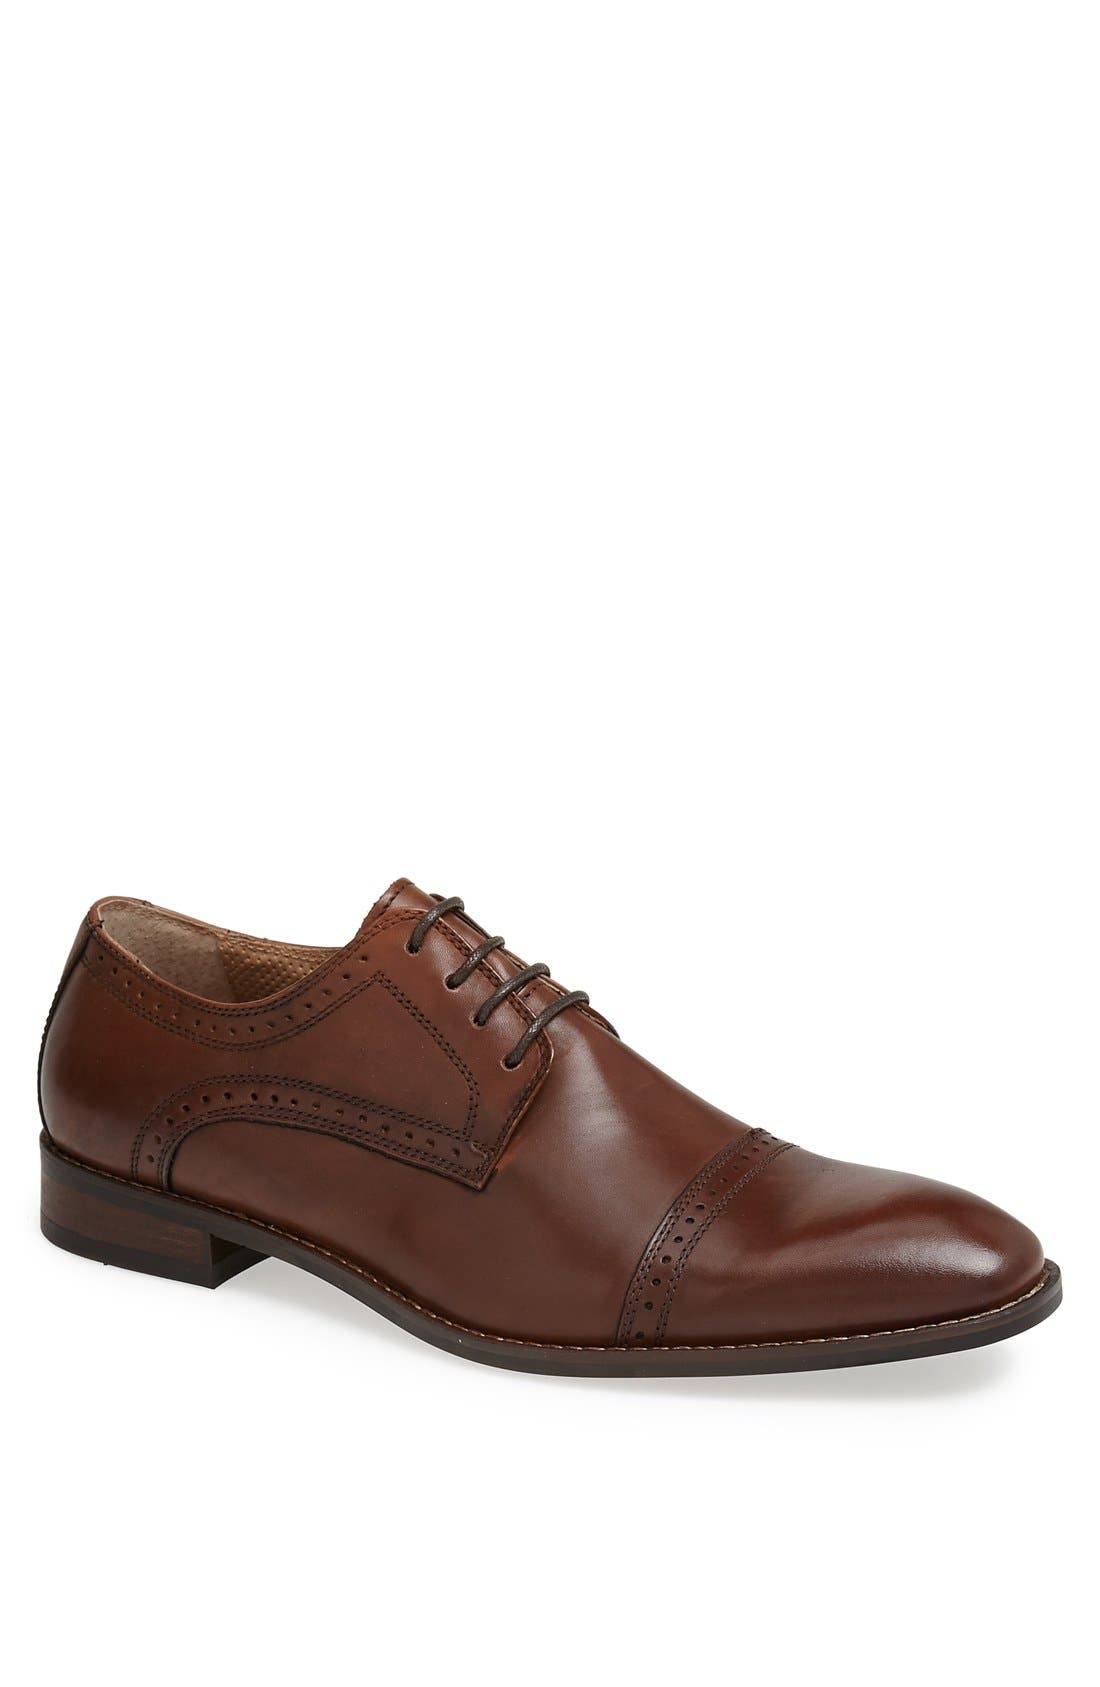 Main Image - Vince Camuto 'Rao' Cap Toe Derby (Men)